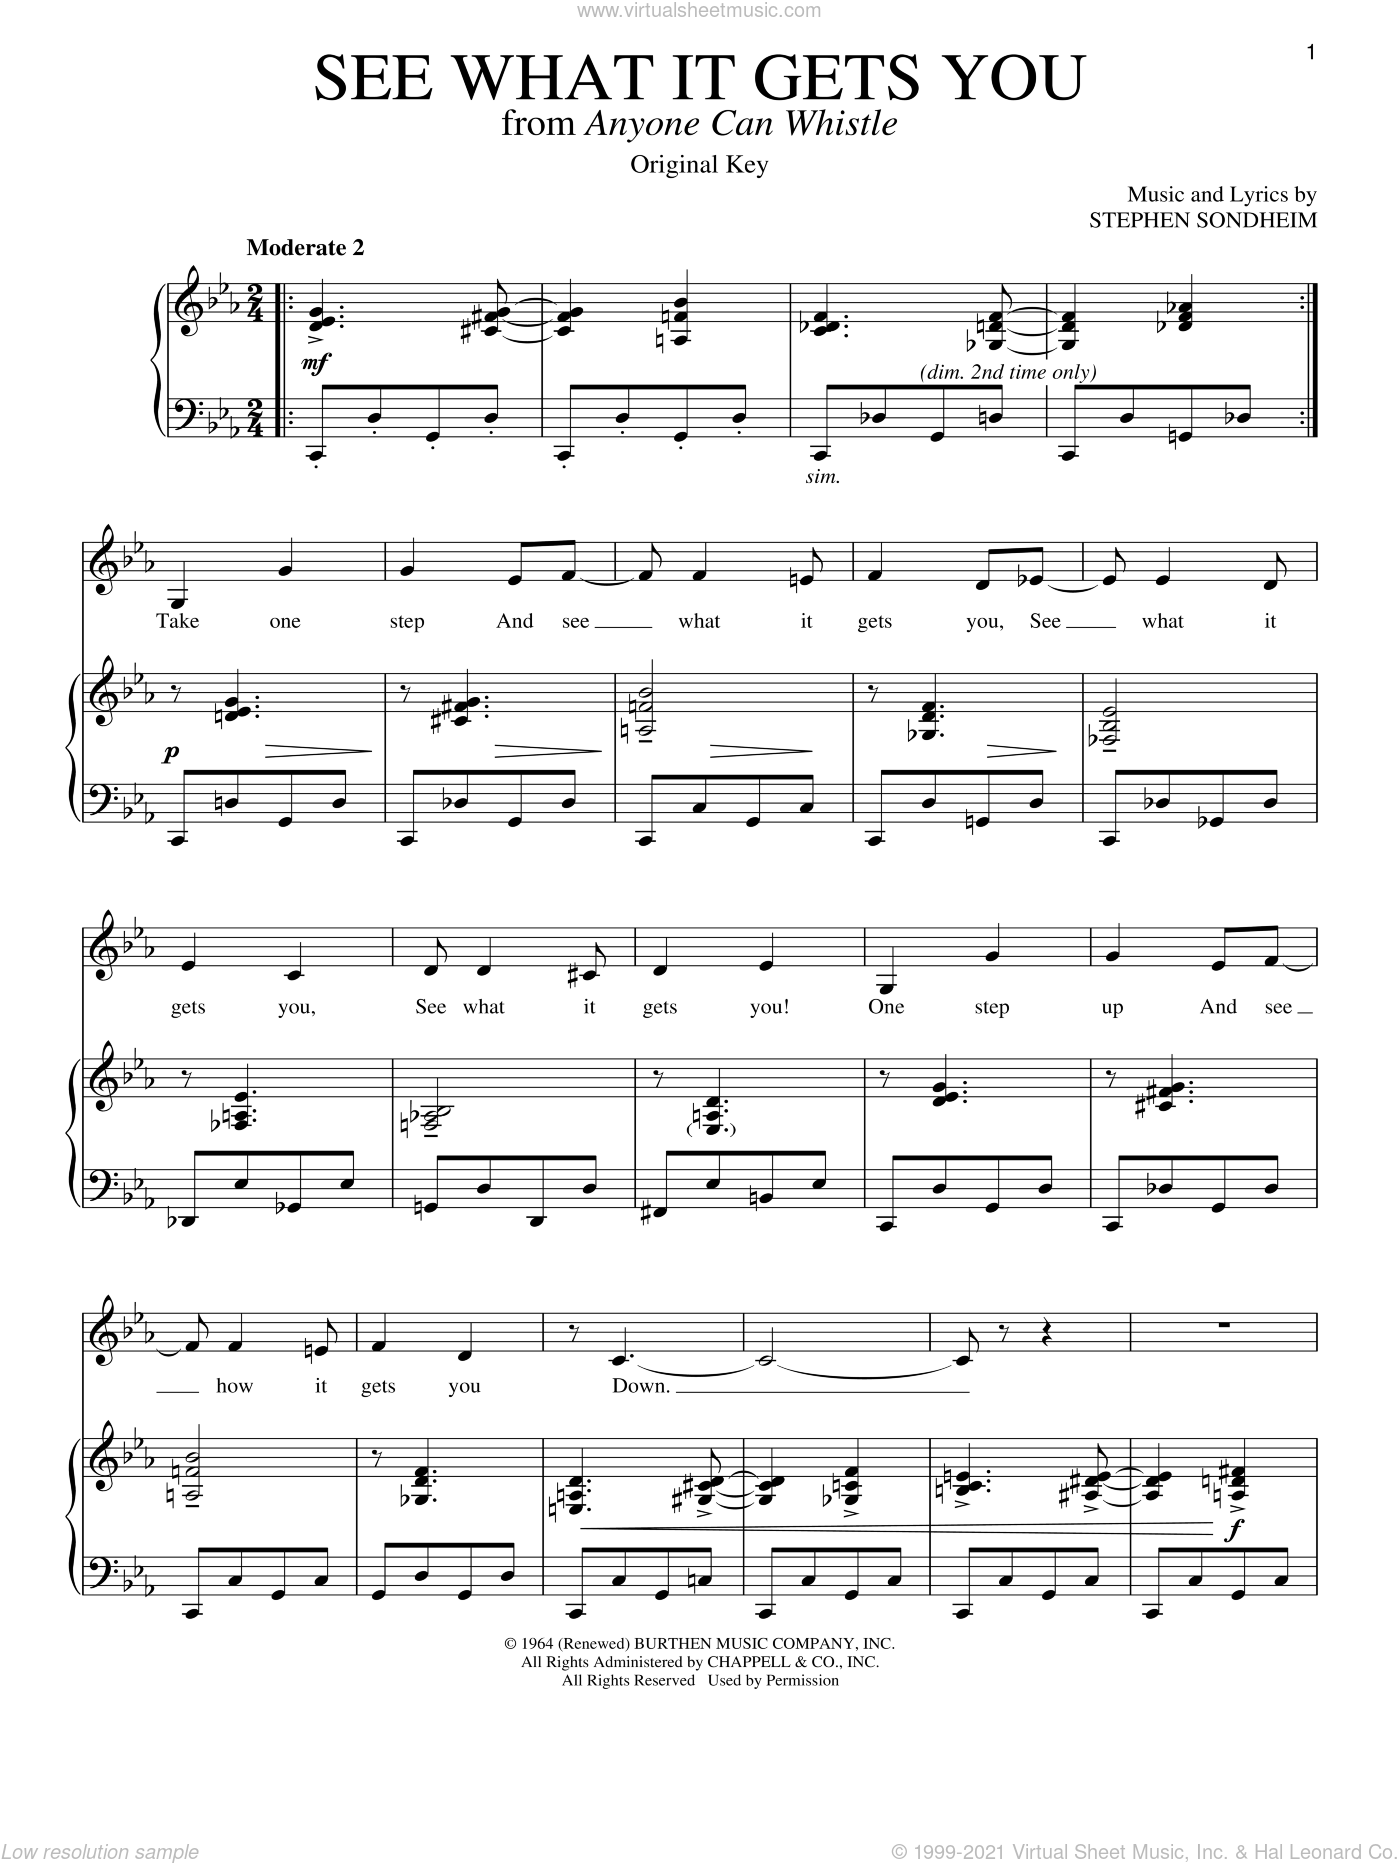 See What It Gets You sheet music for voice and piano by Stephen Sondheim. Score Image Preview.